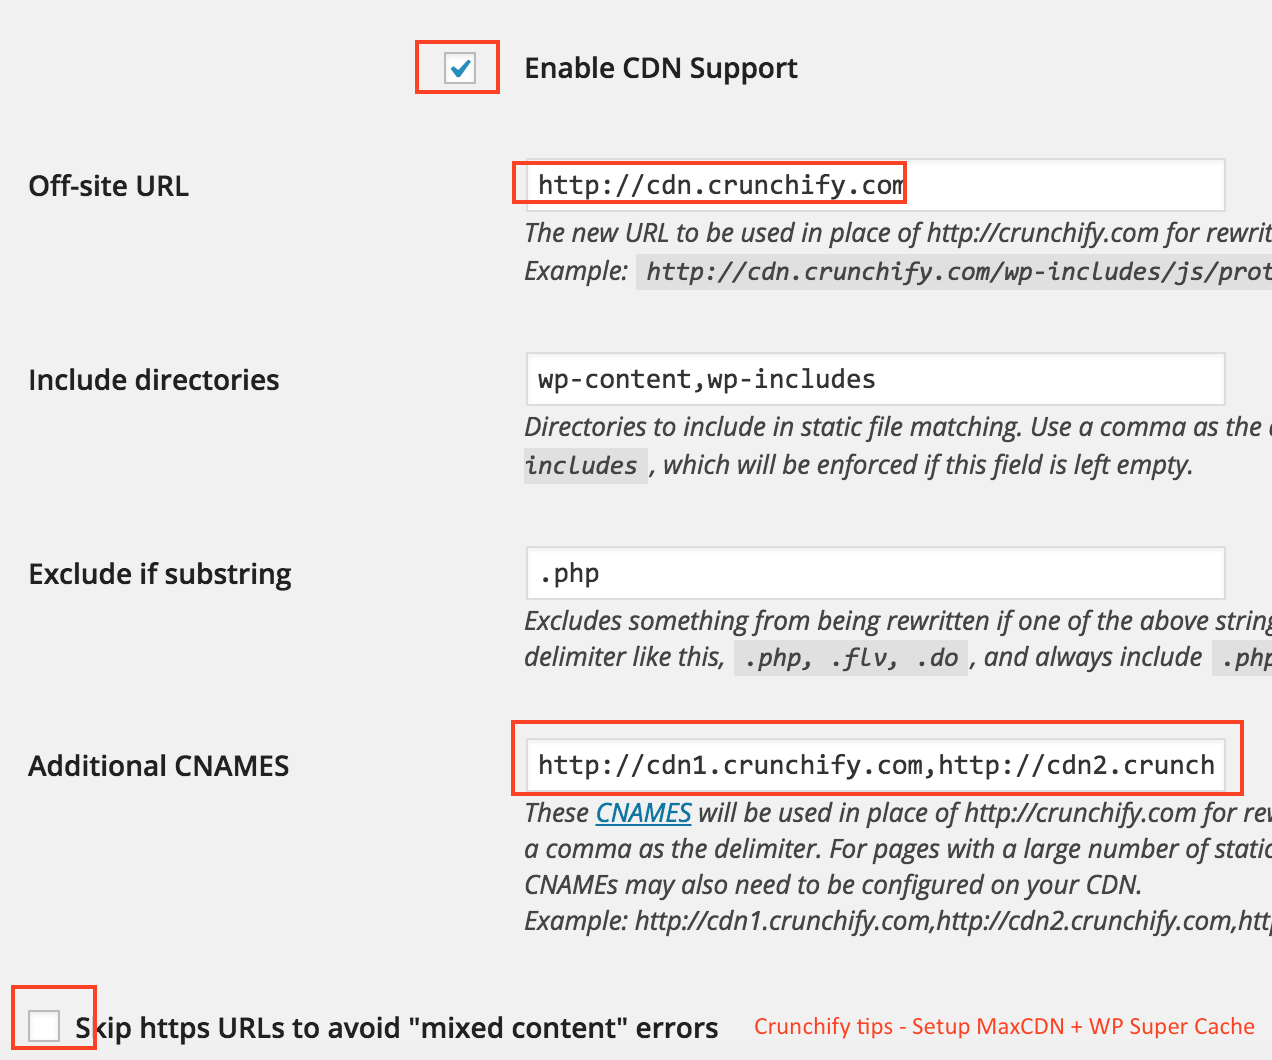 Crunchify.com CDN Setting for WP Super Cache